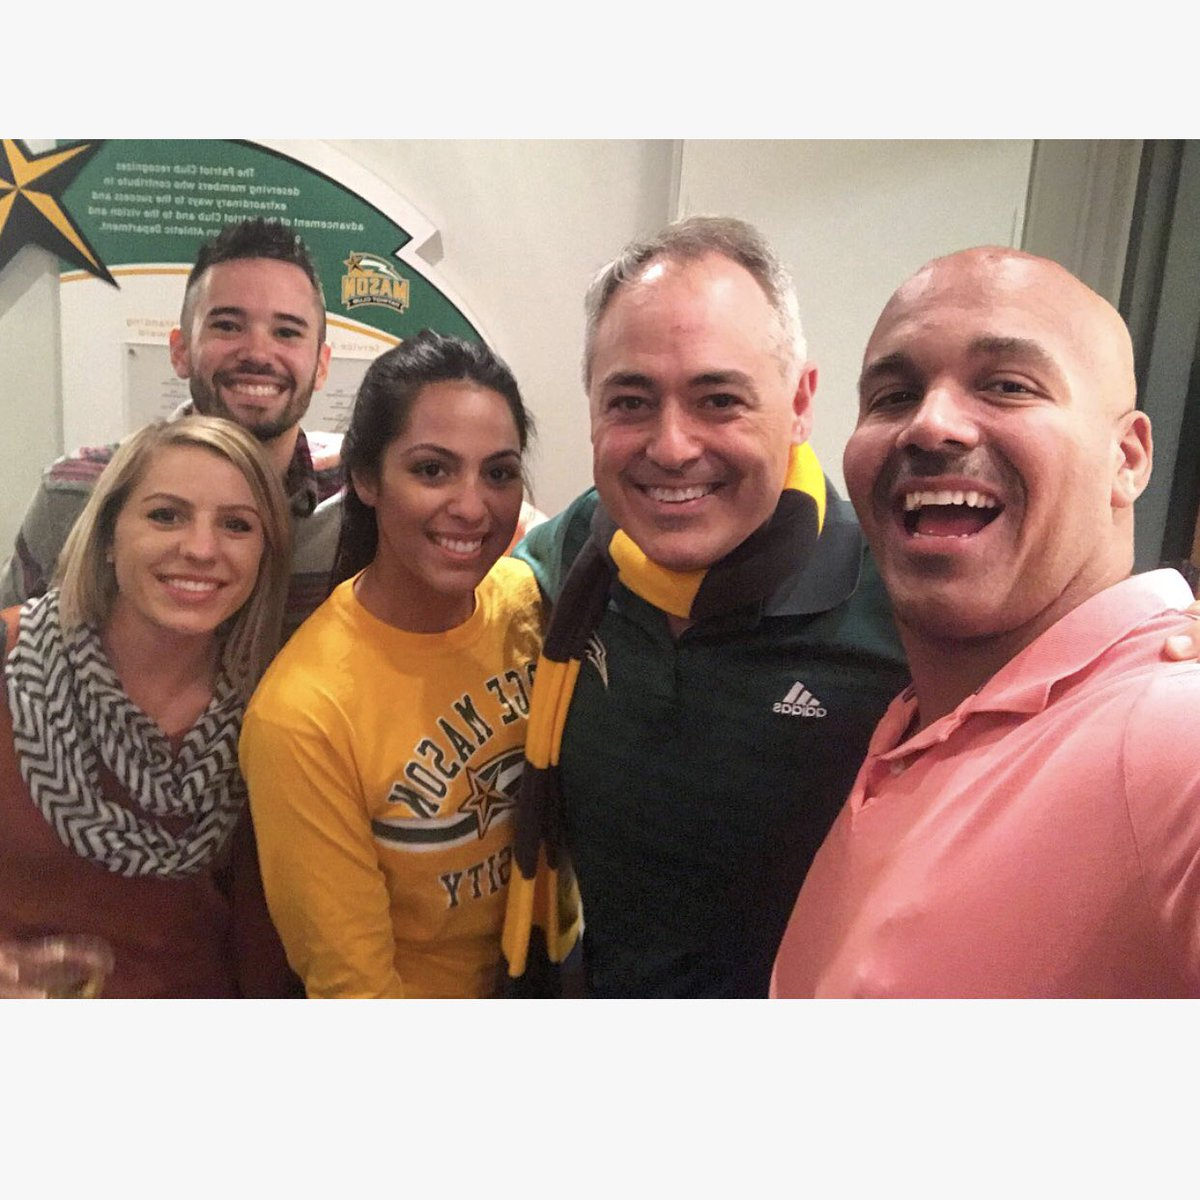 The day I found out I had cancer I went to a GMU basketball game. The day I found out I was cancer free I hung with @CabreraAngel at a Mason game! What a great way to celebrate! #CancerSucks #TrapStrong #GMU <br>http://pic.twitter.com/9bUqFWqWf7